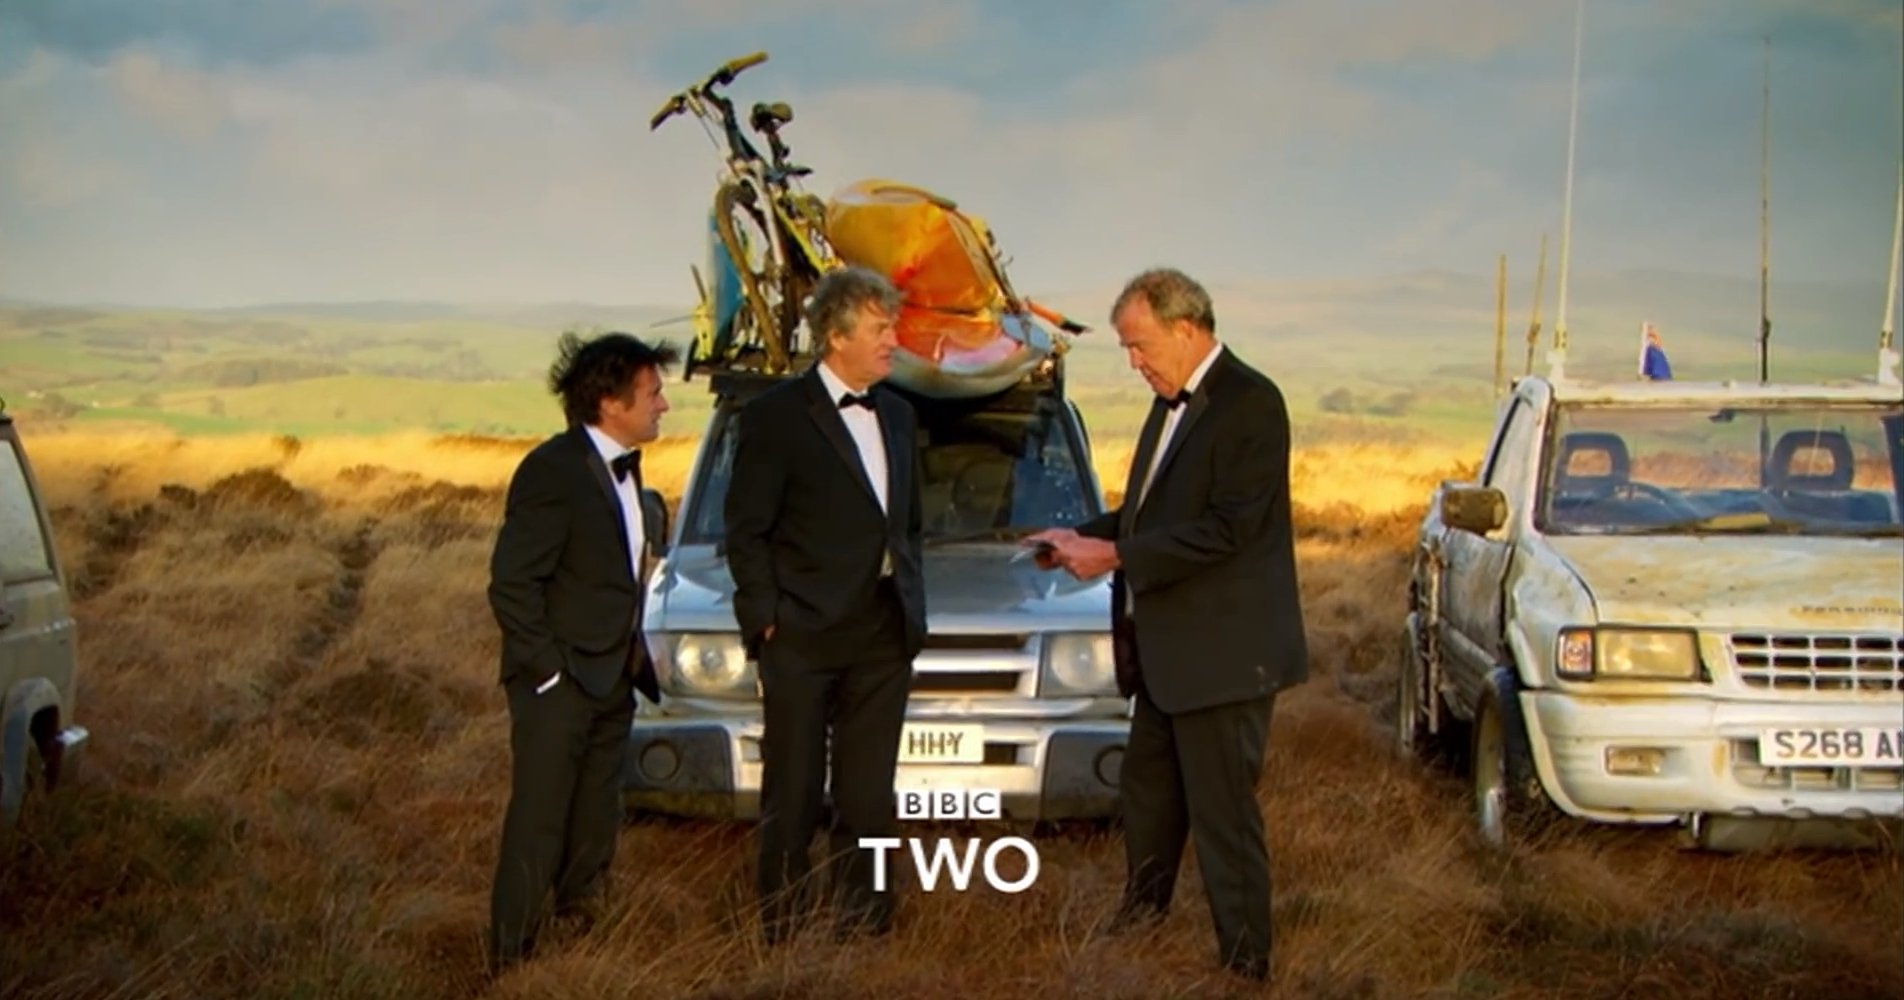 Top Gear Trailer Released, We Get Excited